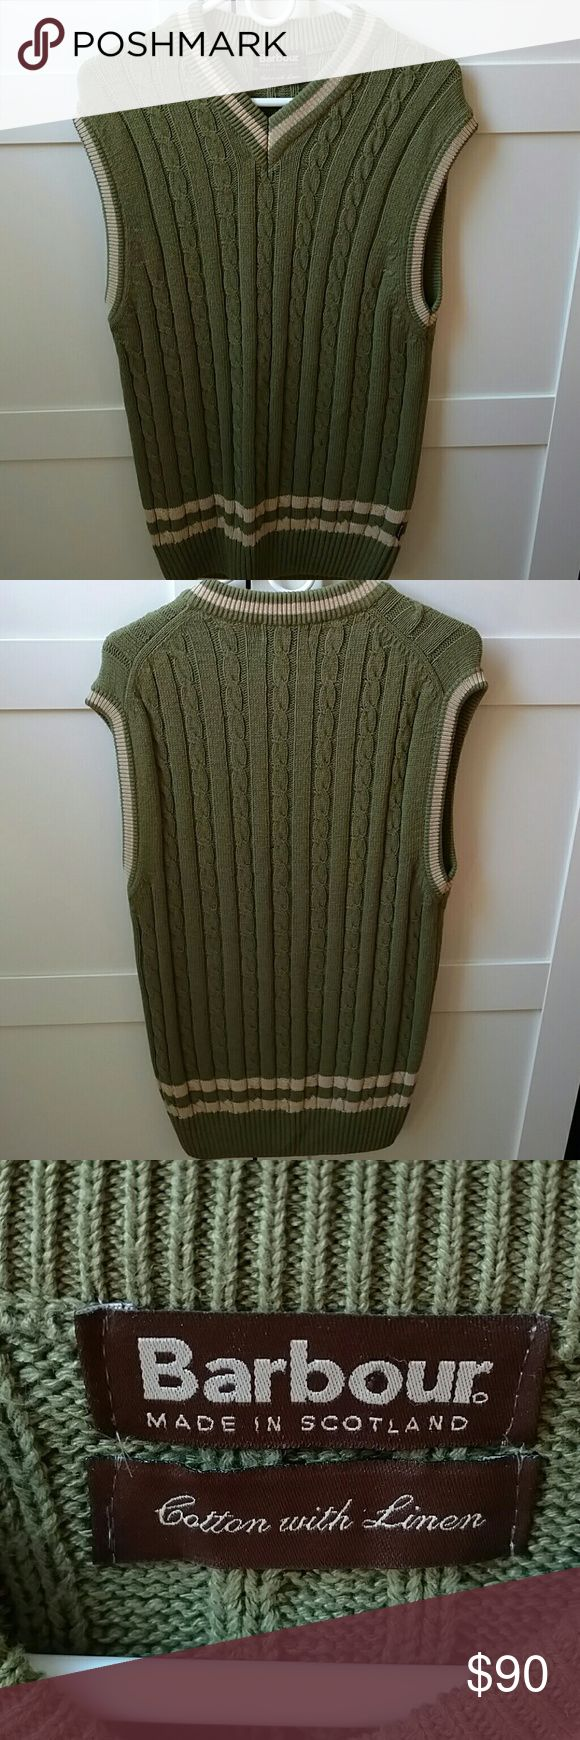 Vintage Barbour vest, green and beige This is a great vintage cable knit Barbour vest.  Made of cotton, linen, and viscose.  Excellent vintage condition Barbour Sweaters V-Neck